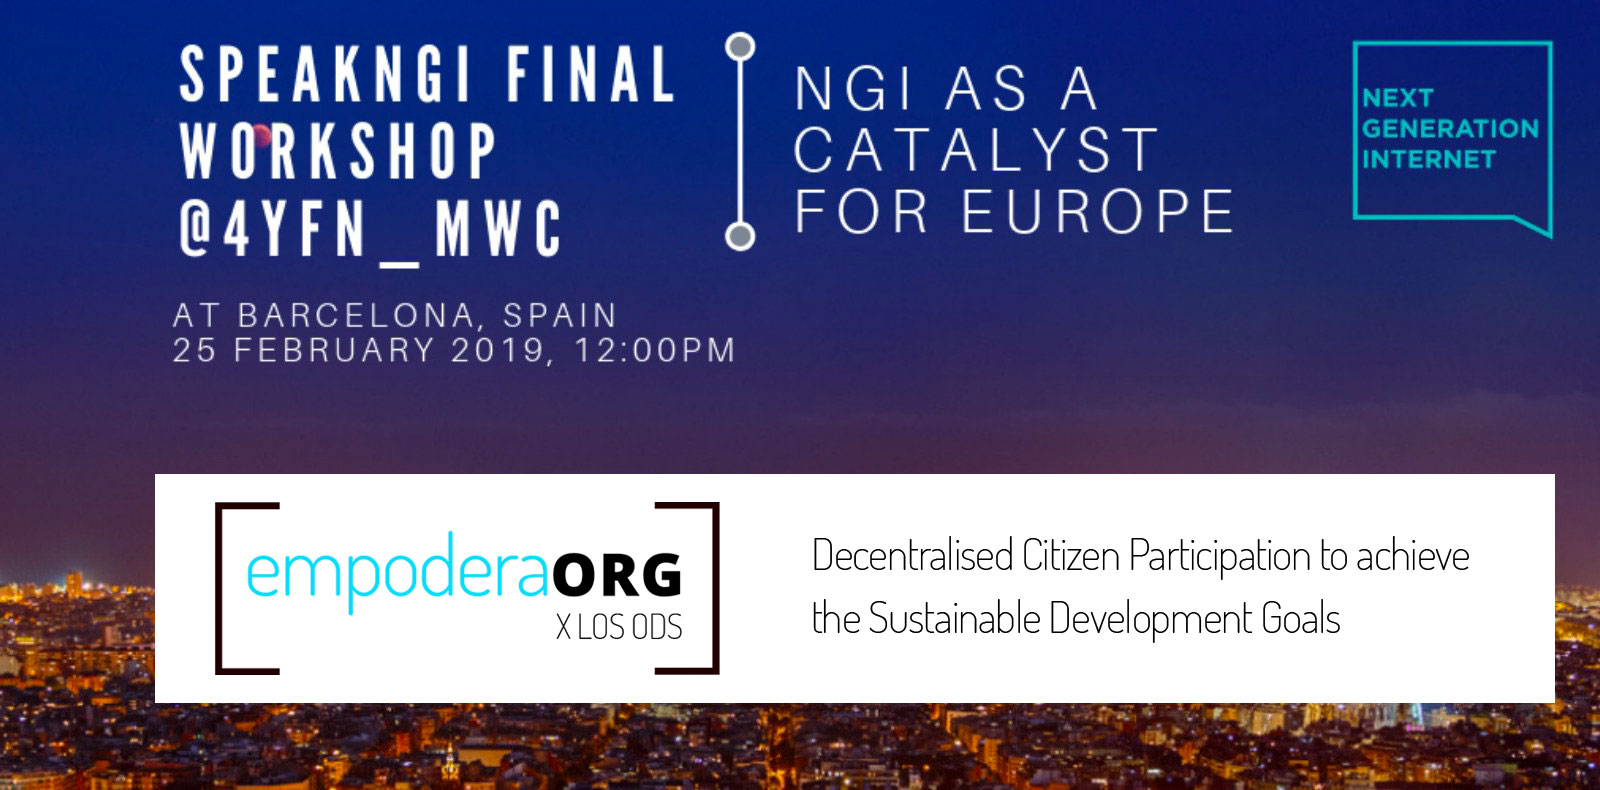 Decentralised Citizen Participation with Empodera.org: Collective Intelligence to achieve the SDGs